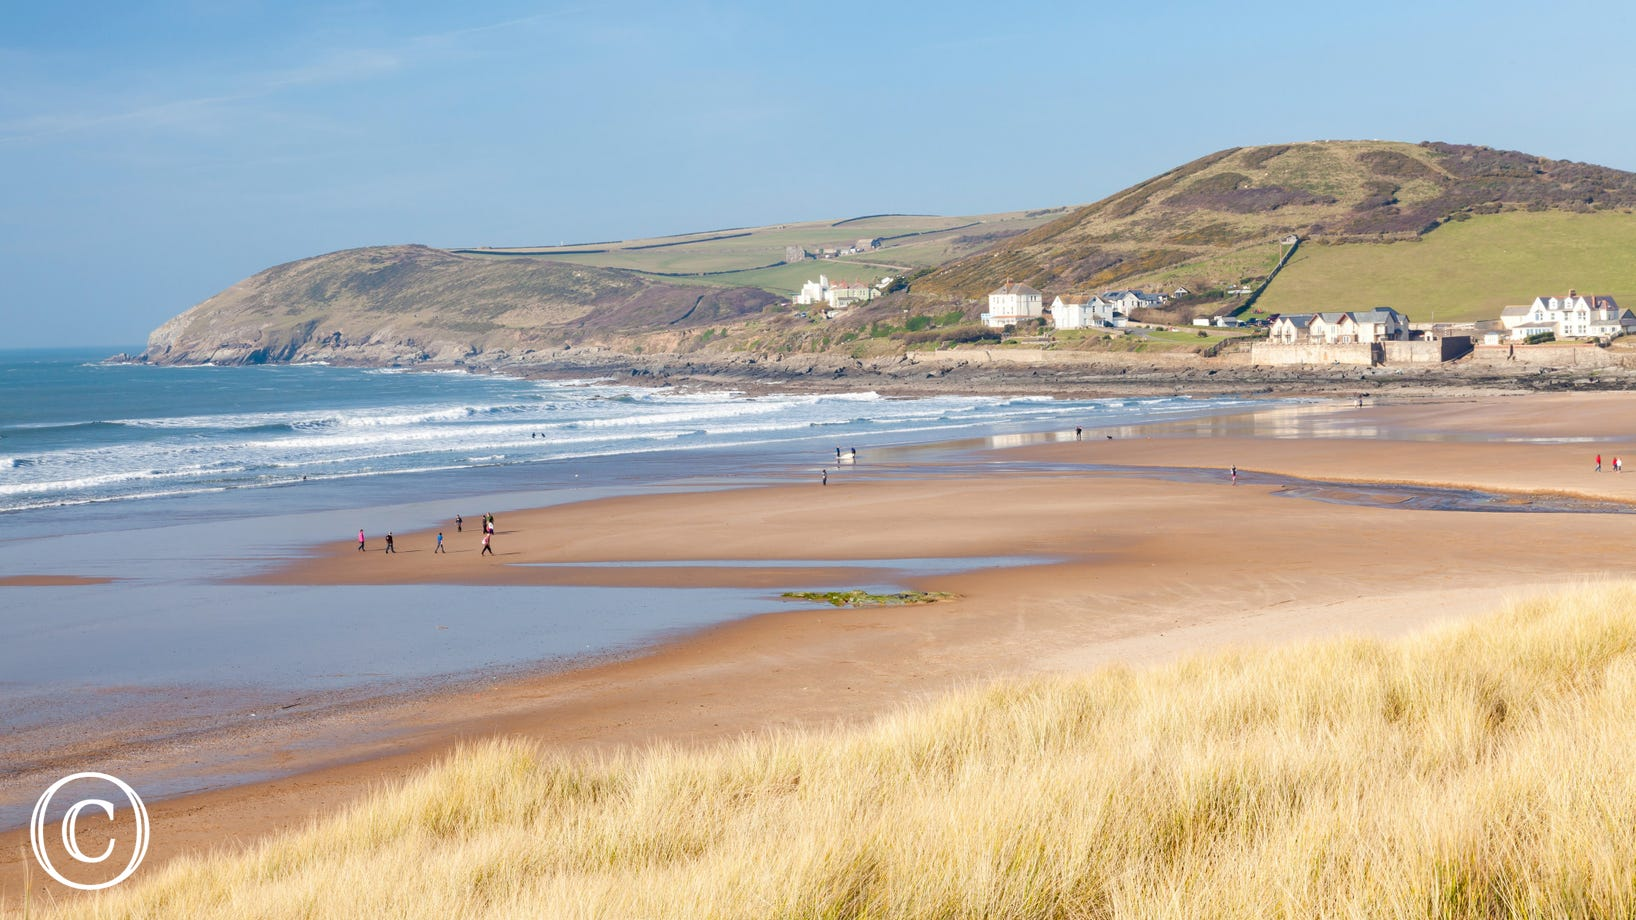 The beautiful sandy beach of Croyde is just a short drive away